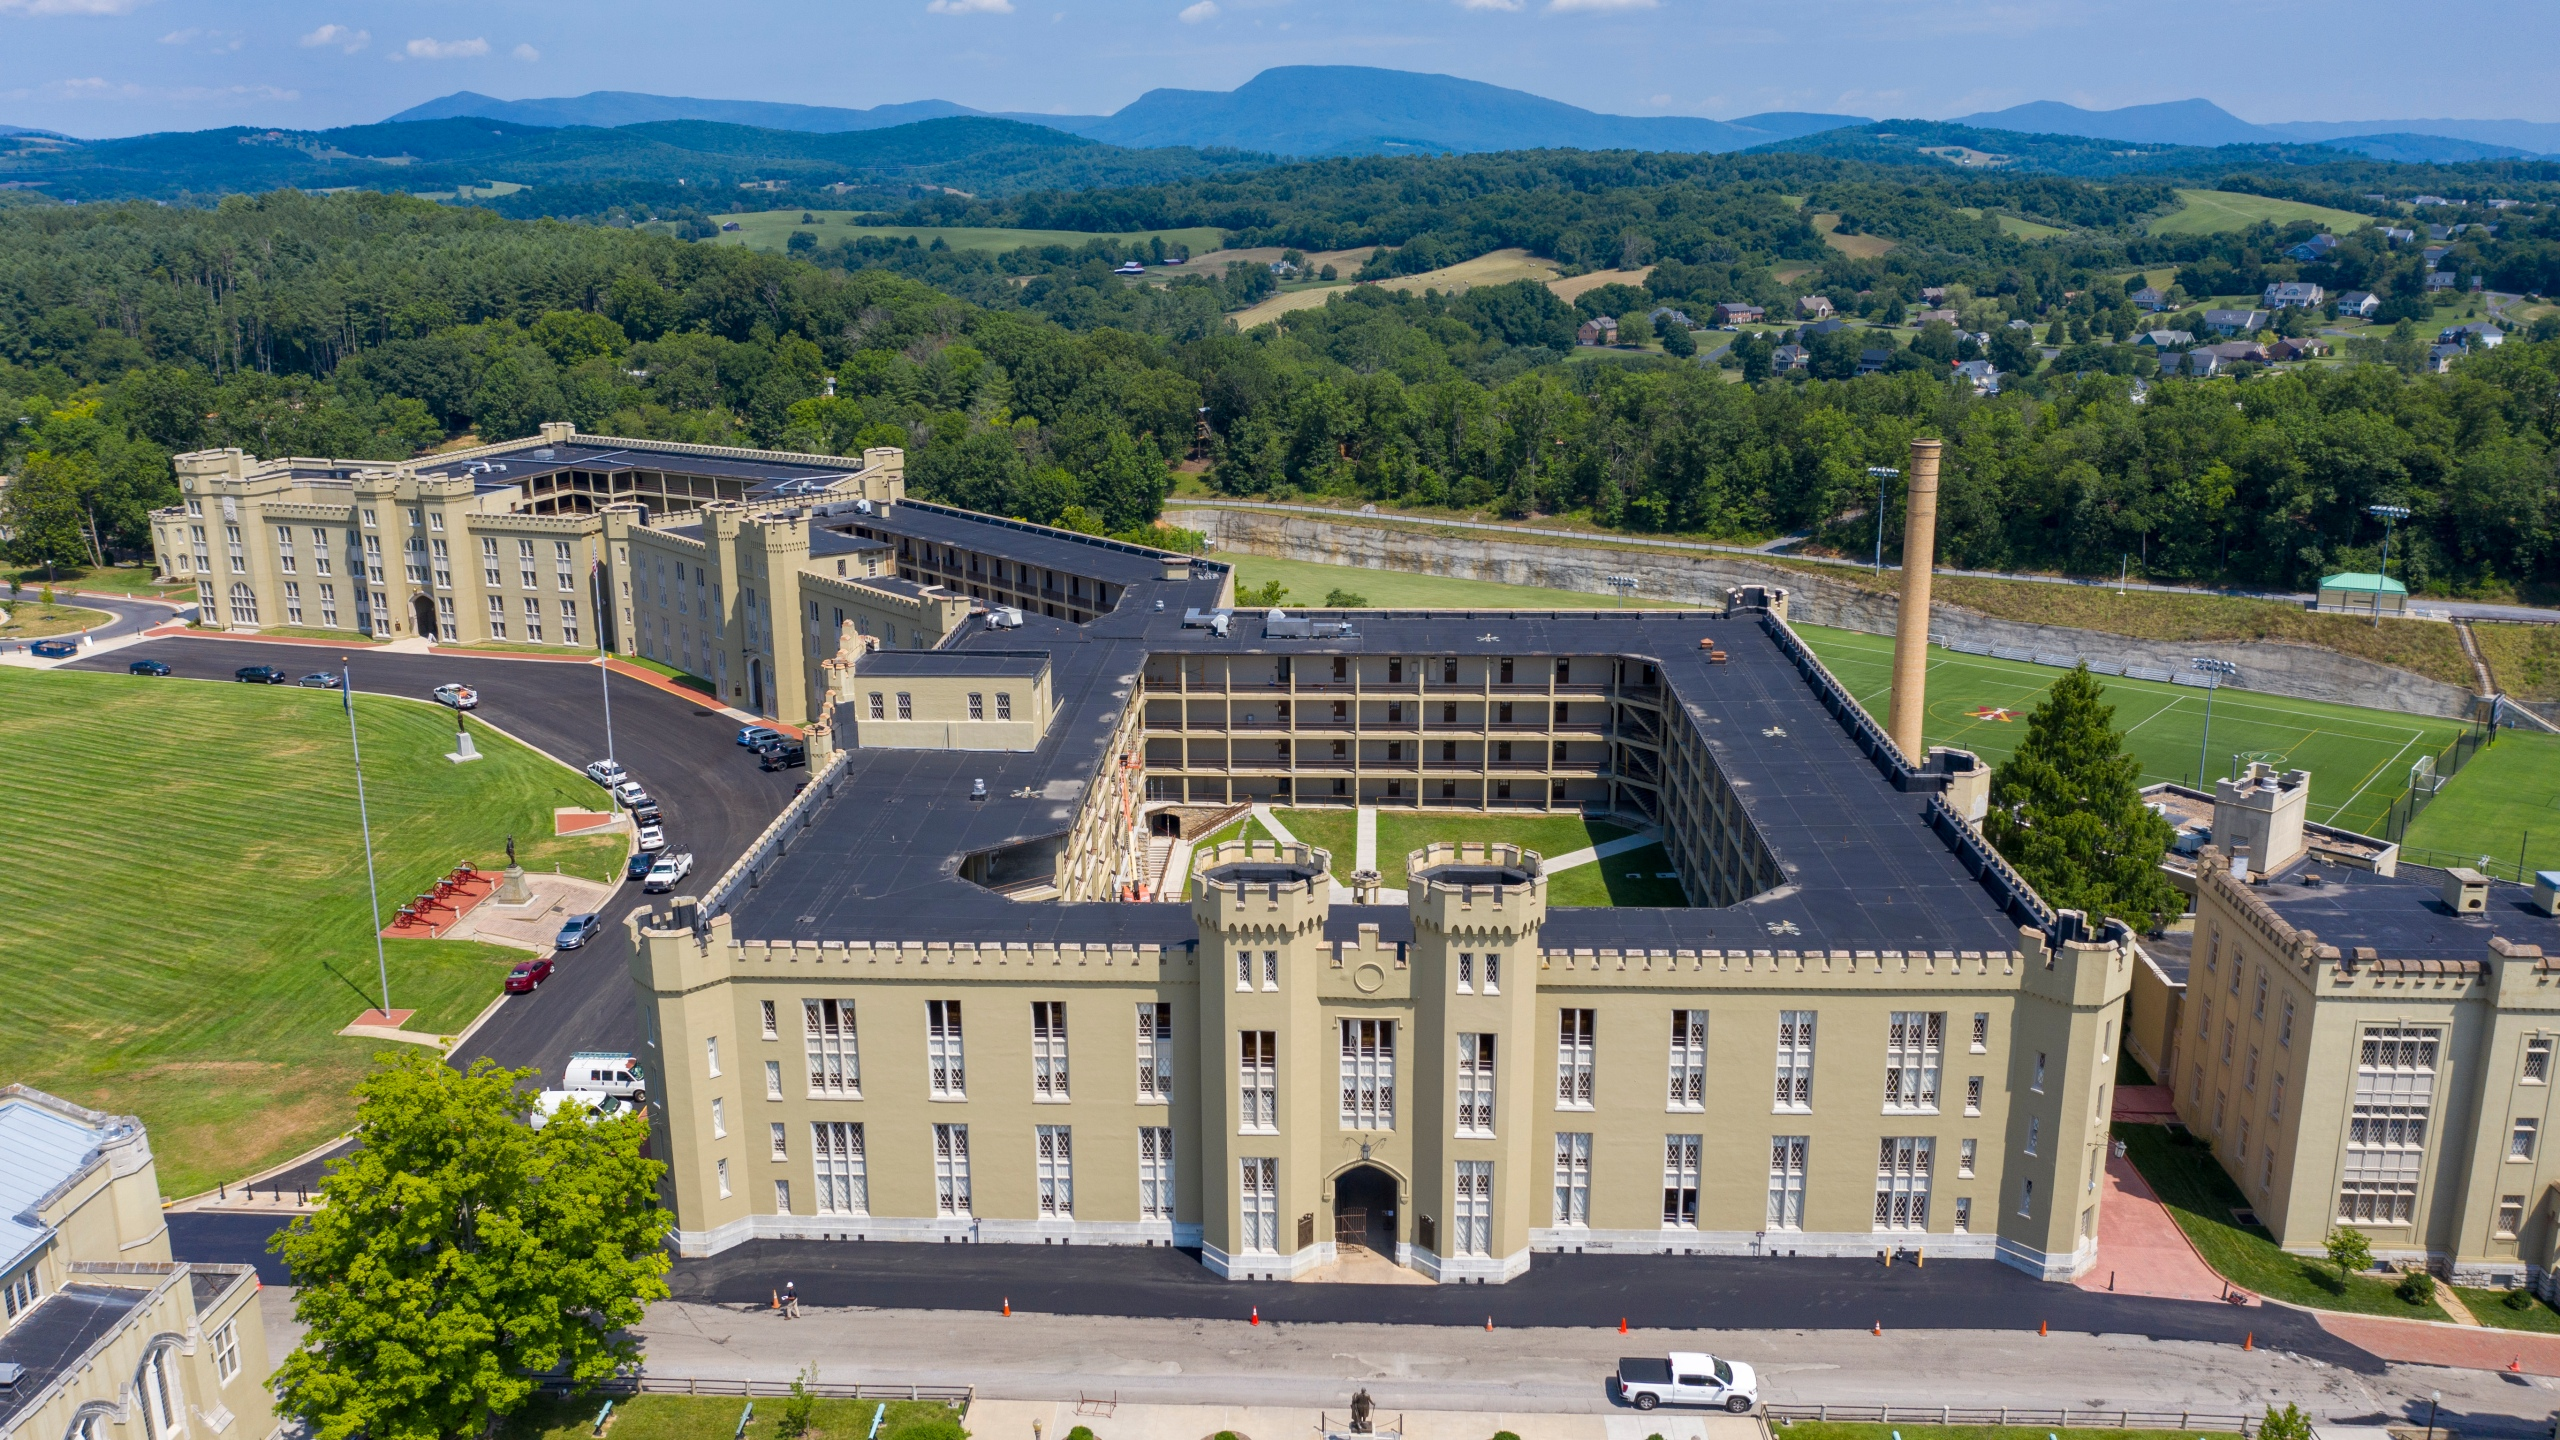 New Report Reveals Racism and Sexual Assault at Virginia Military Institute